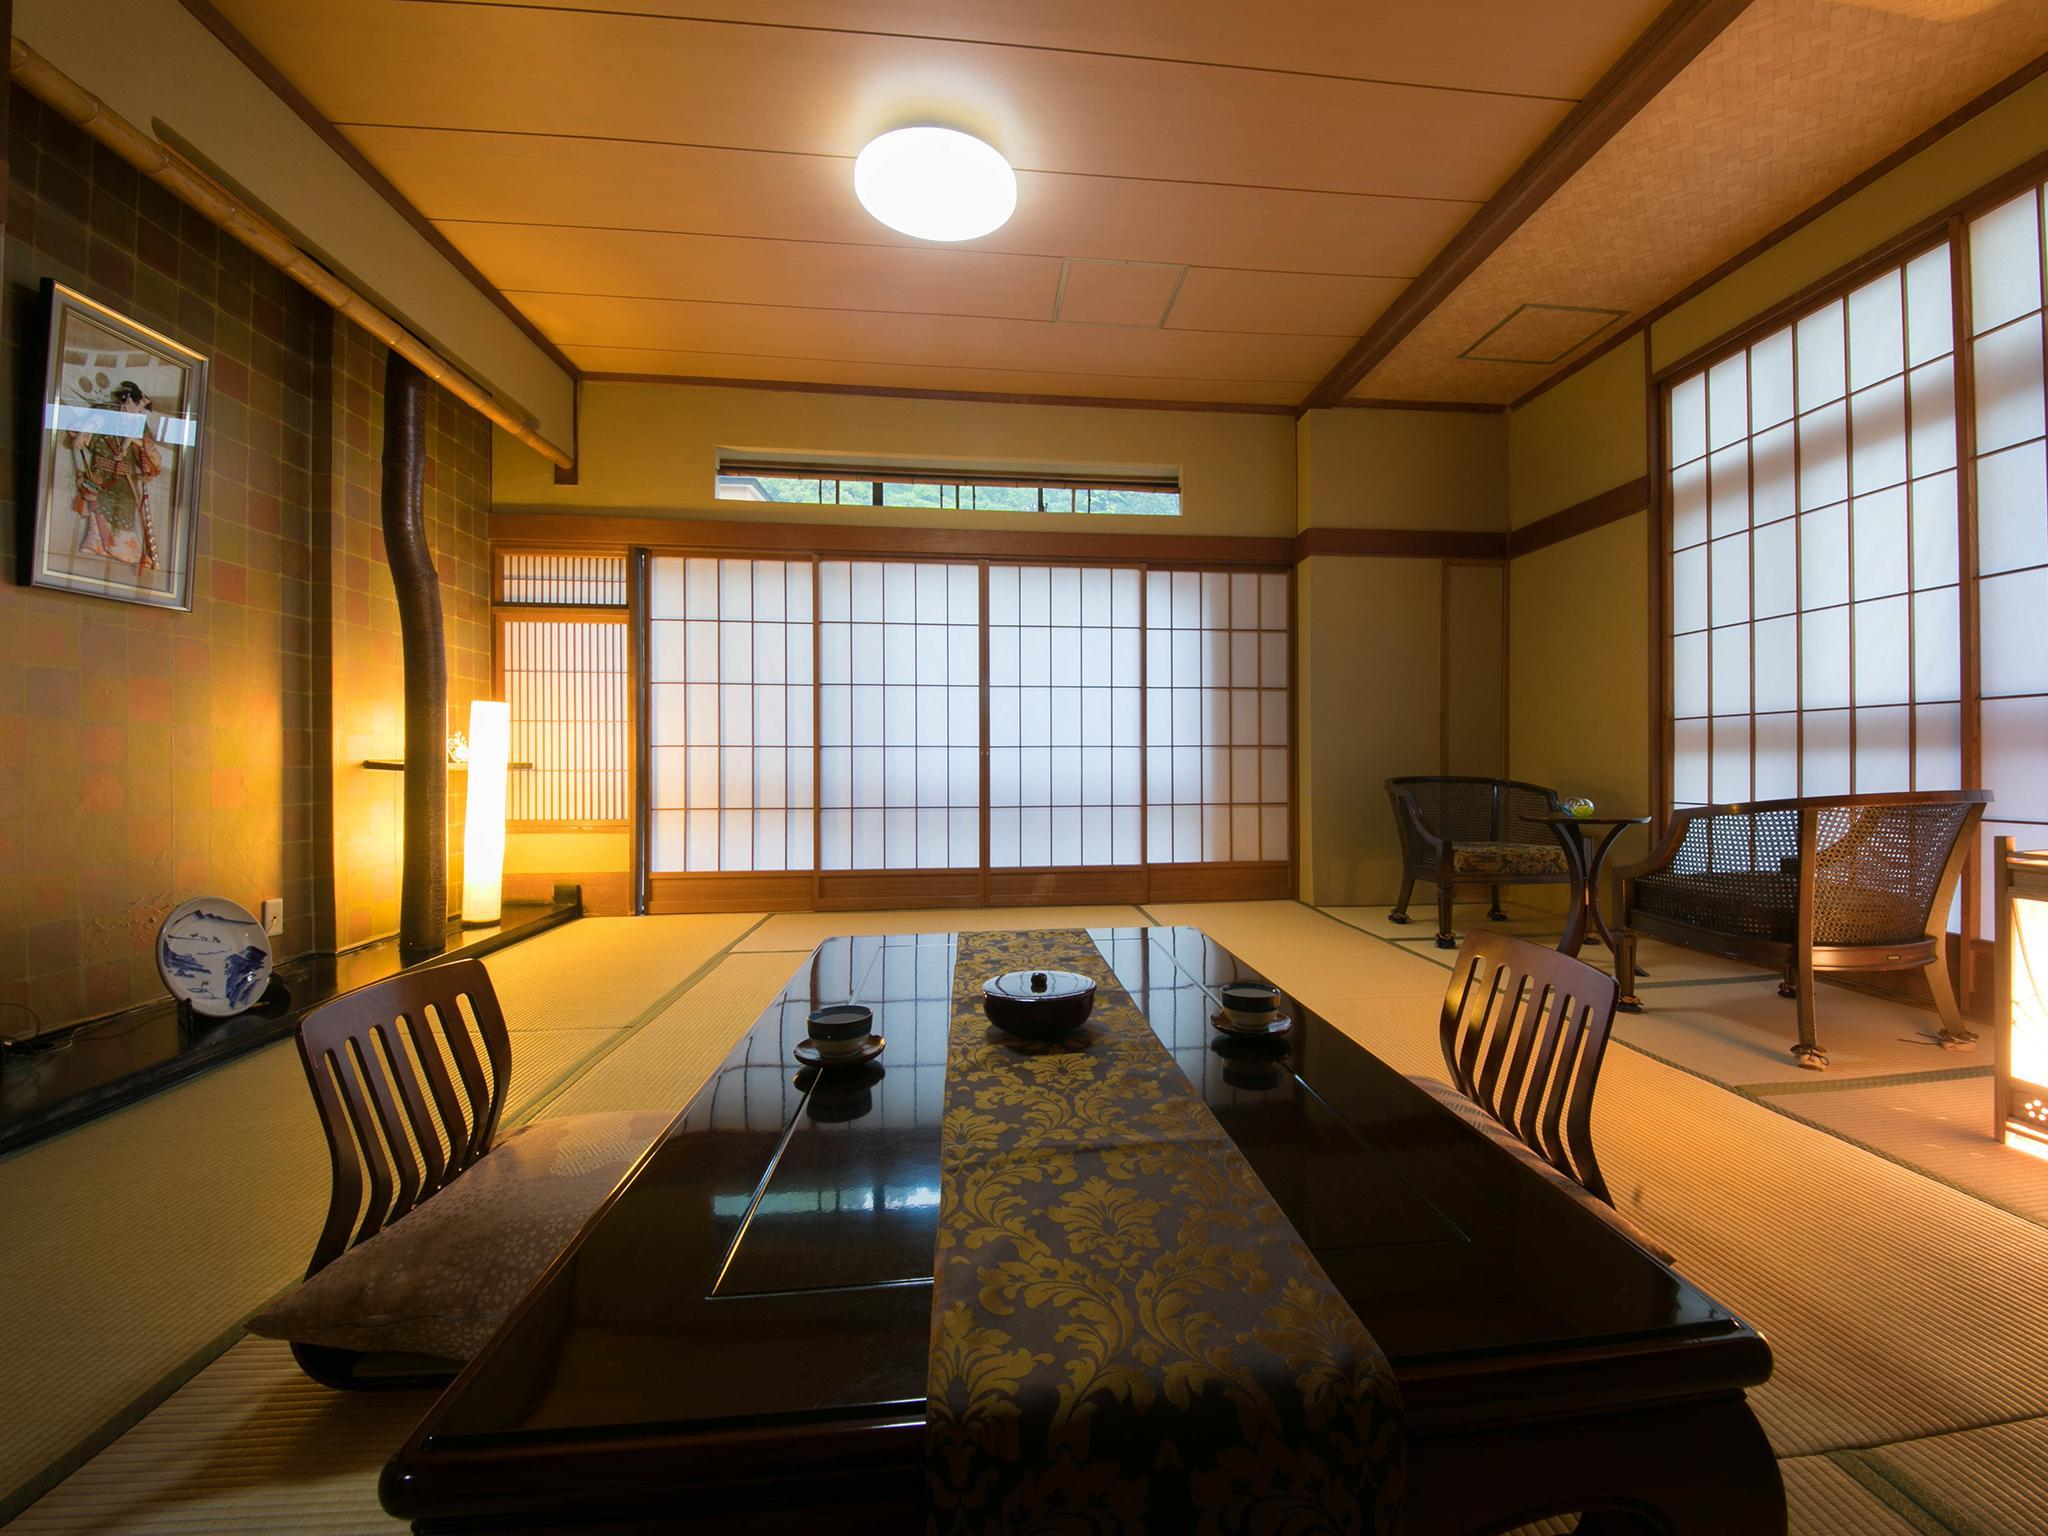 Japanese Style Room with 12 Tatami